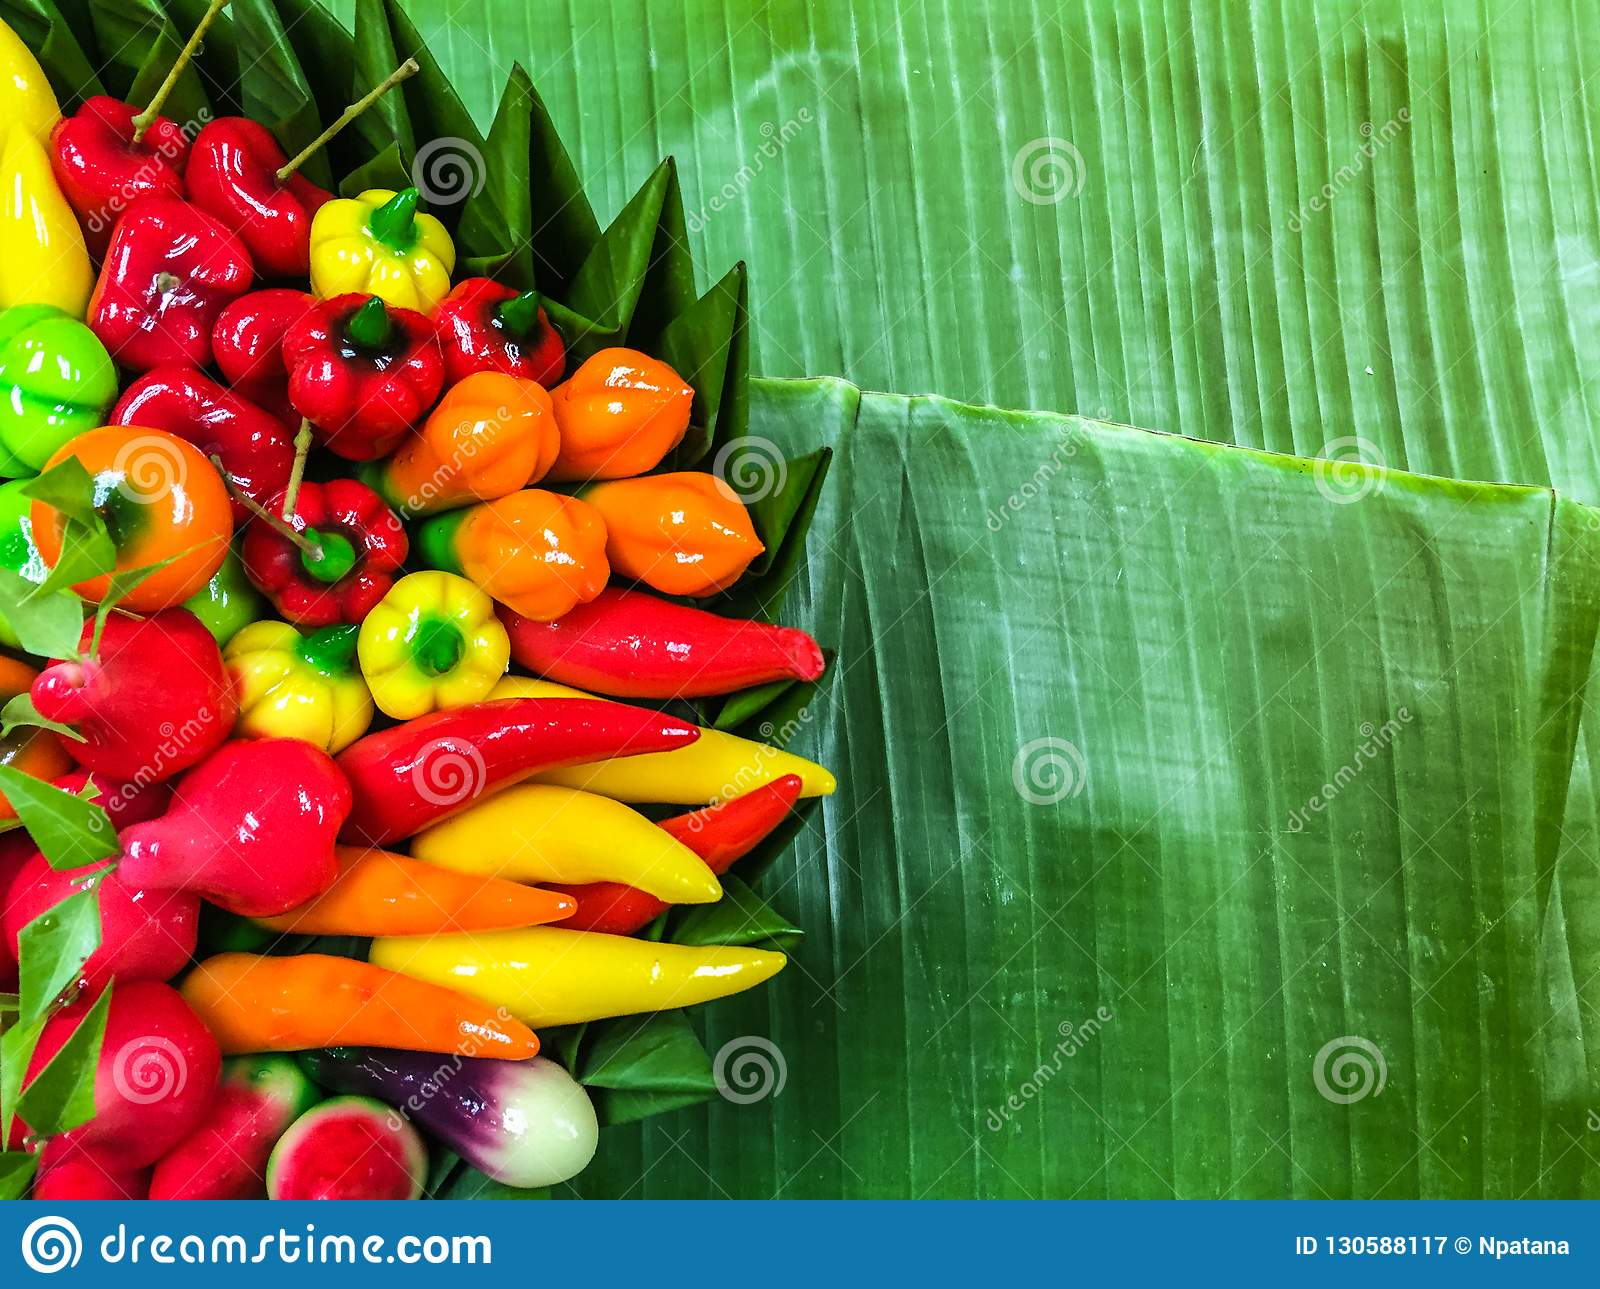 Fruit Shaped Mung Beans in Jelly on banana leaves ,Thai style